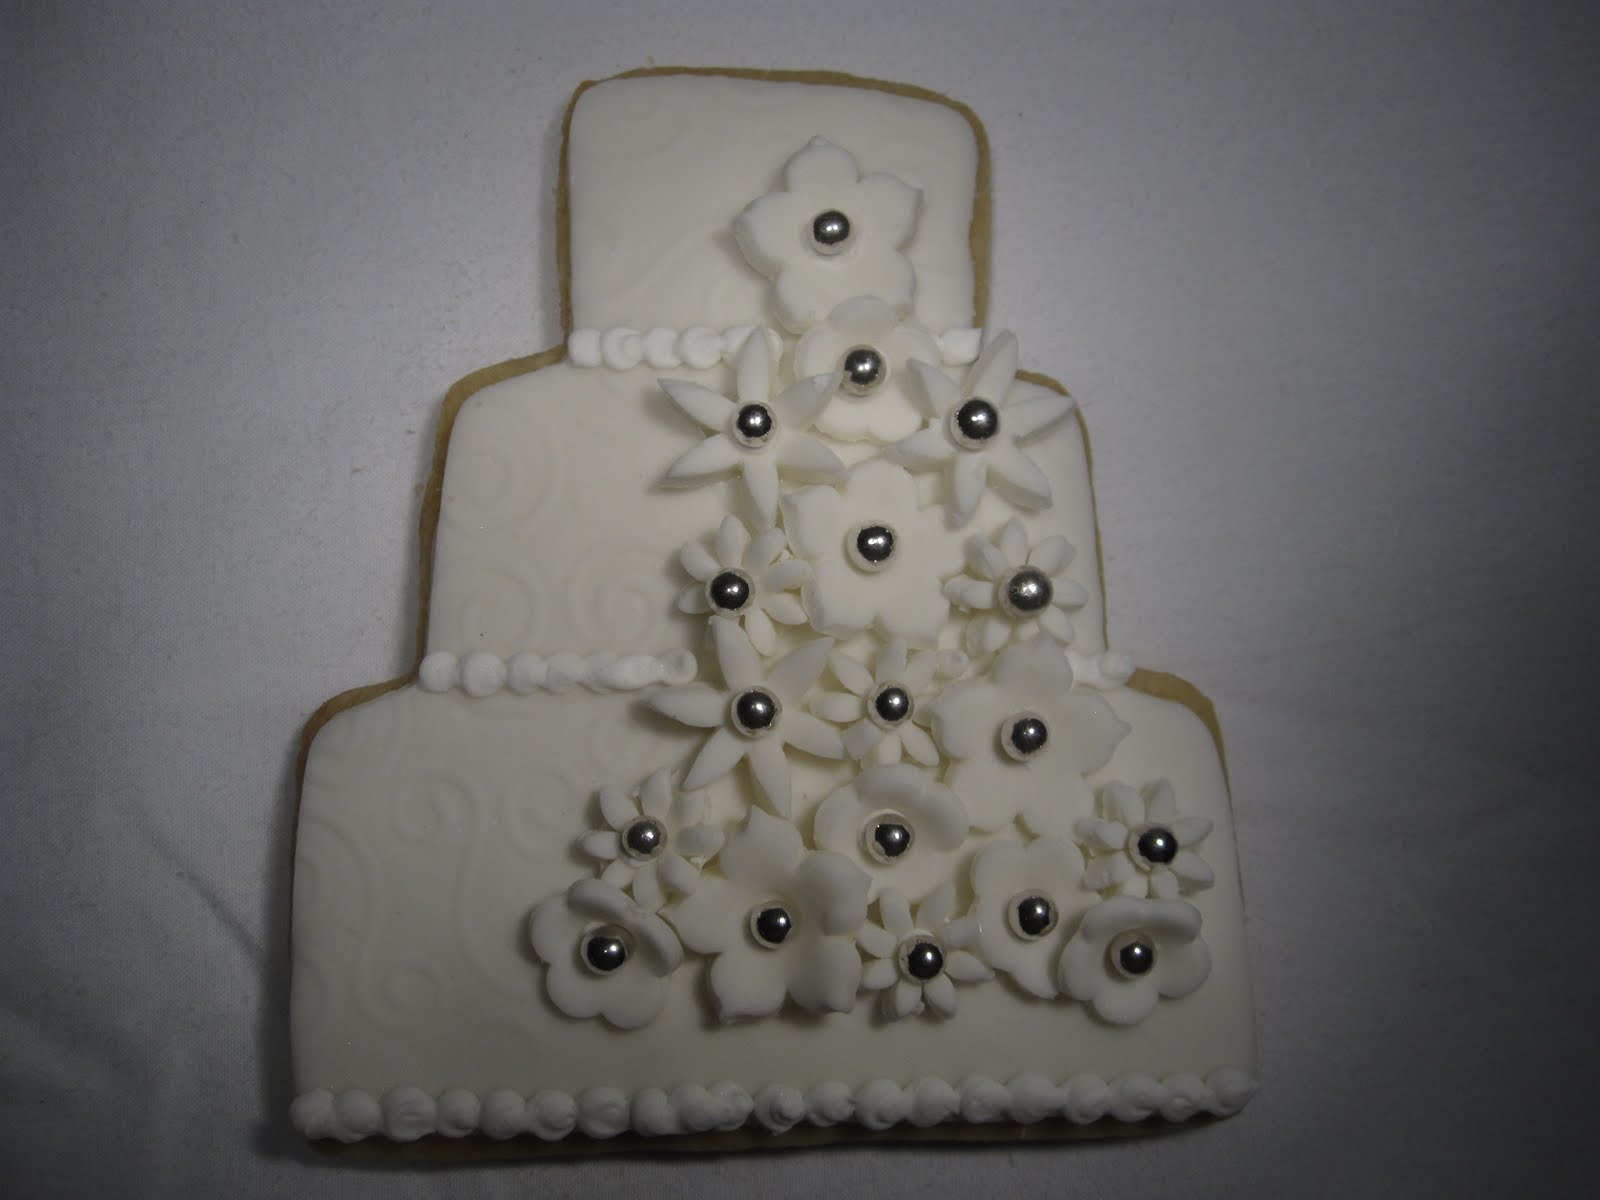 White cake with flowers and dragges